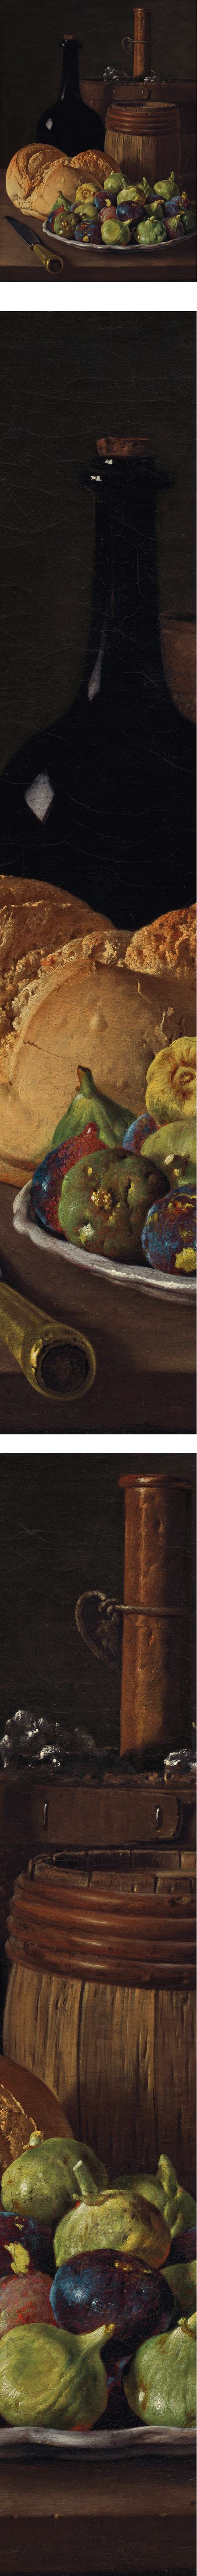 Still Life with Figs and Bread, Luis Melendez